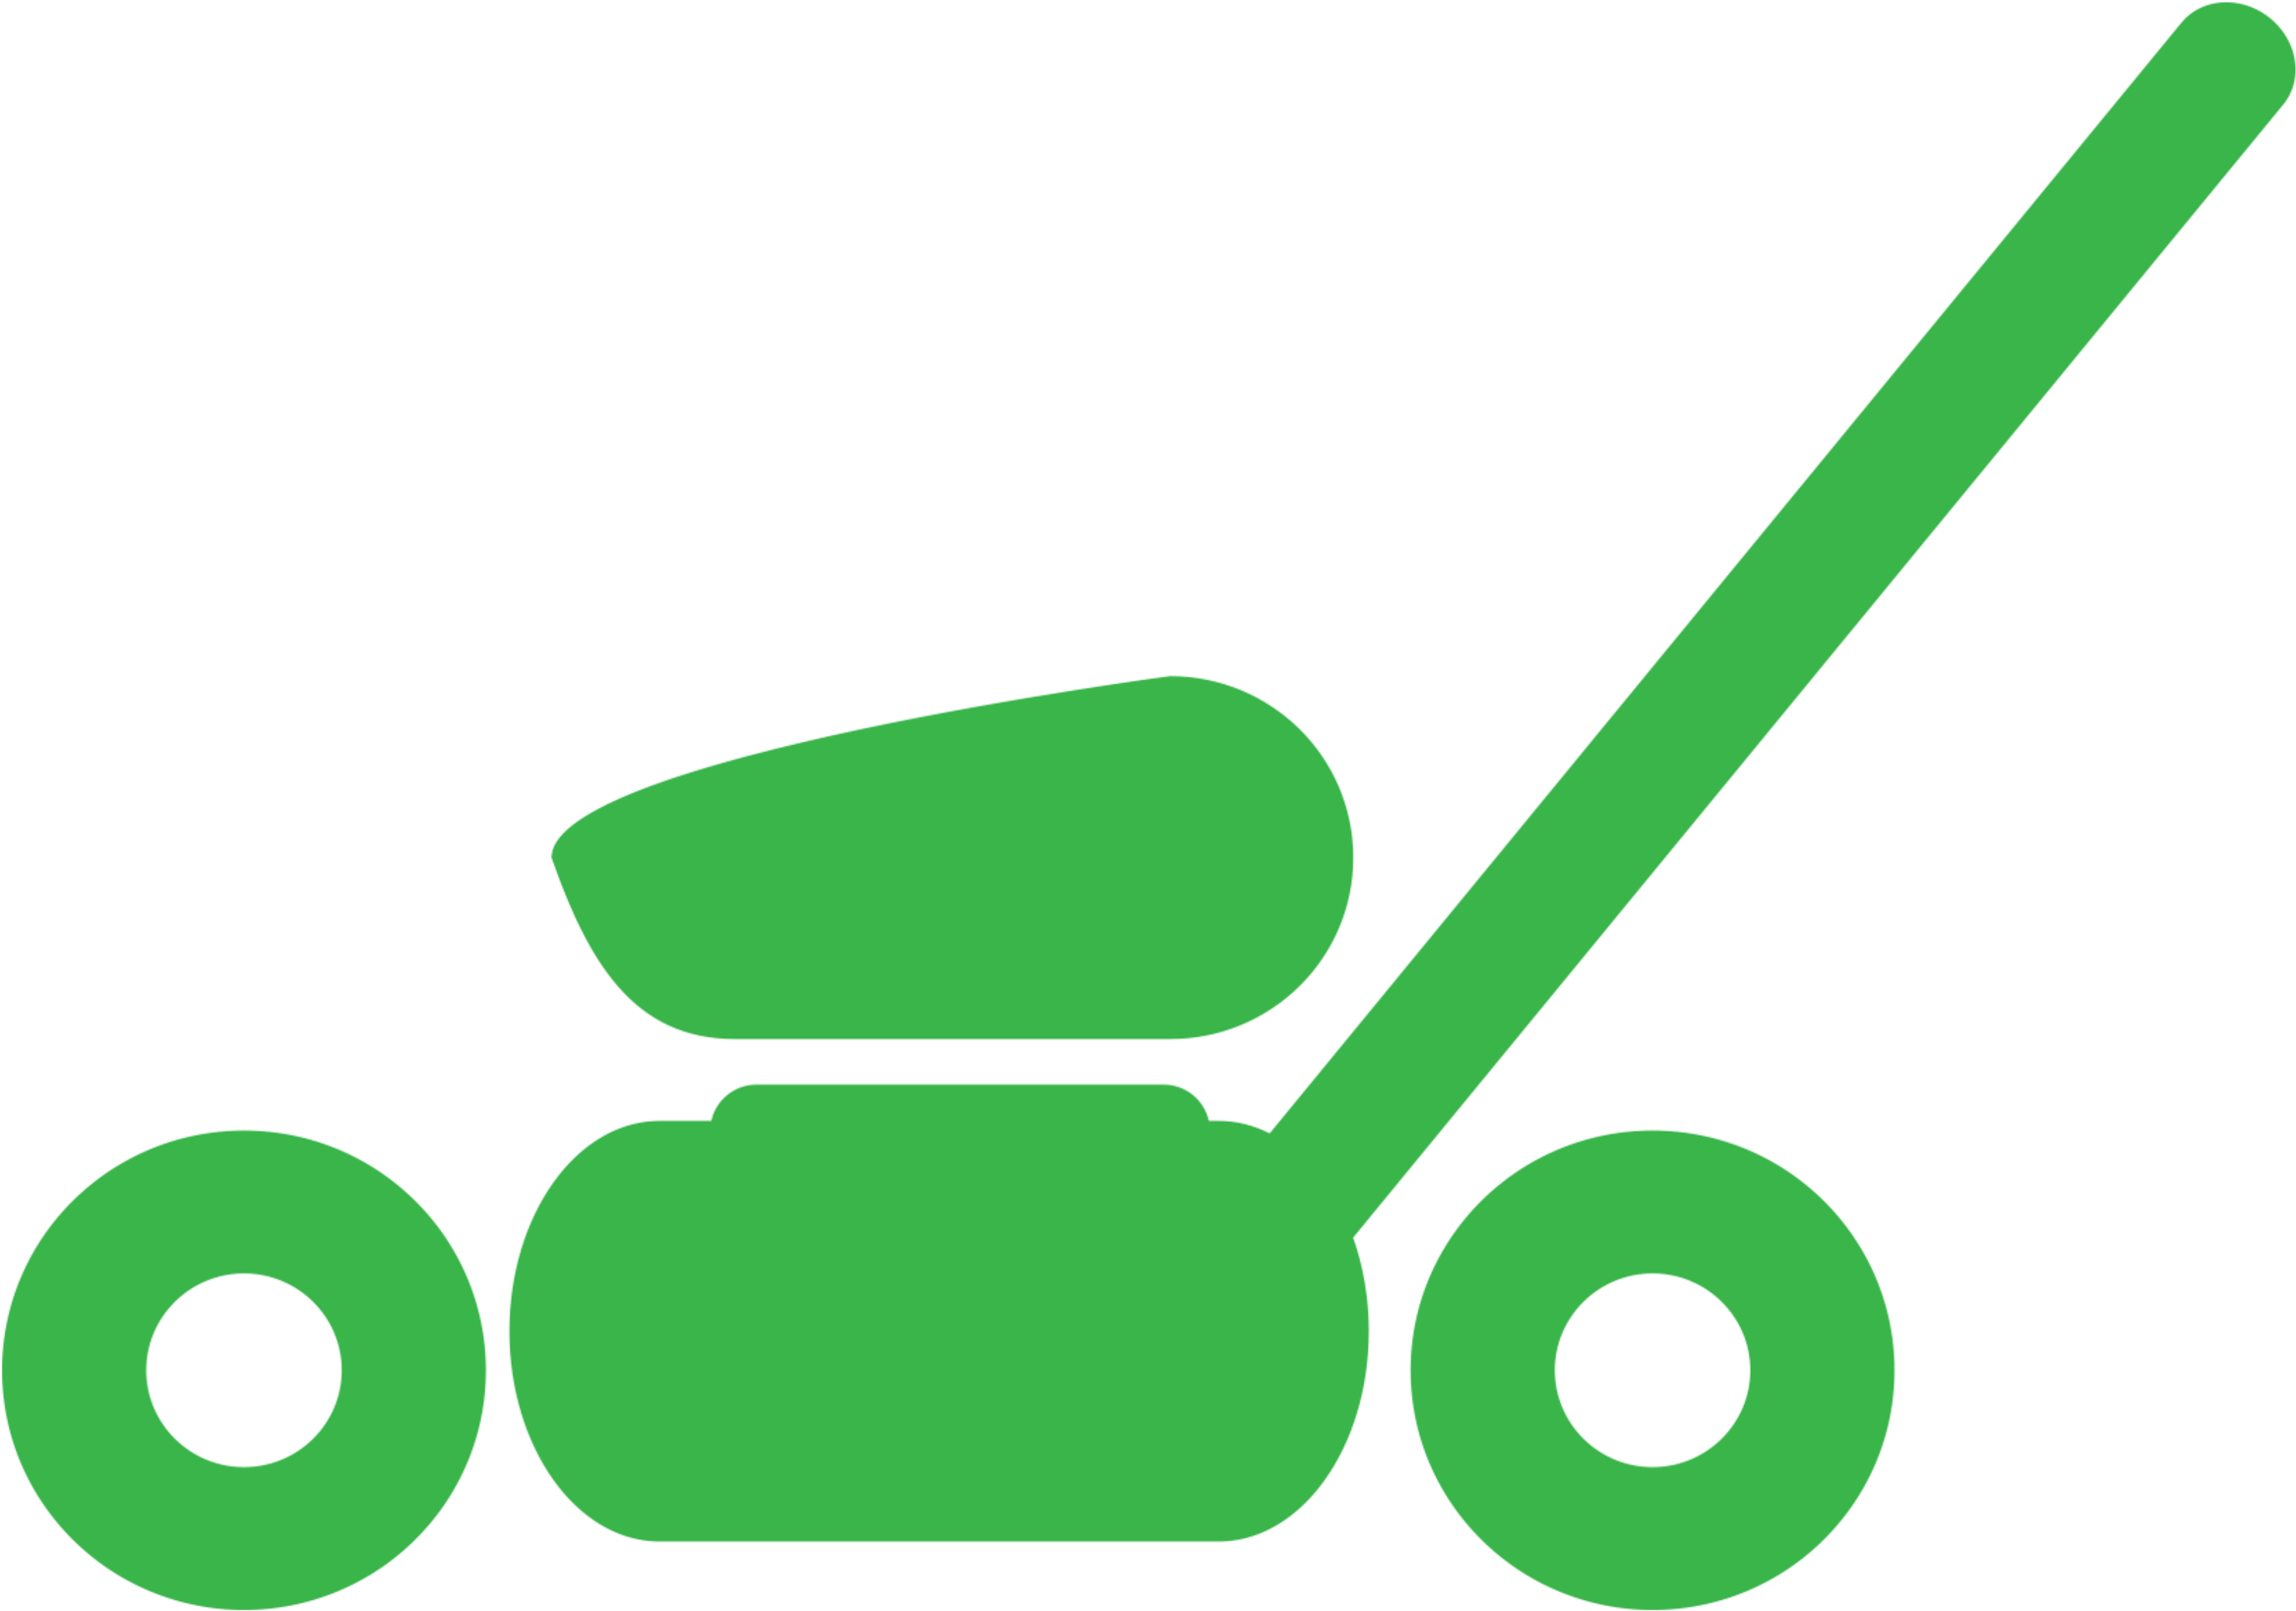 Mowing clipart small engine. Download hd lawn mower